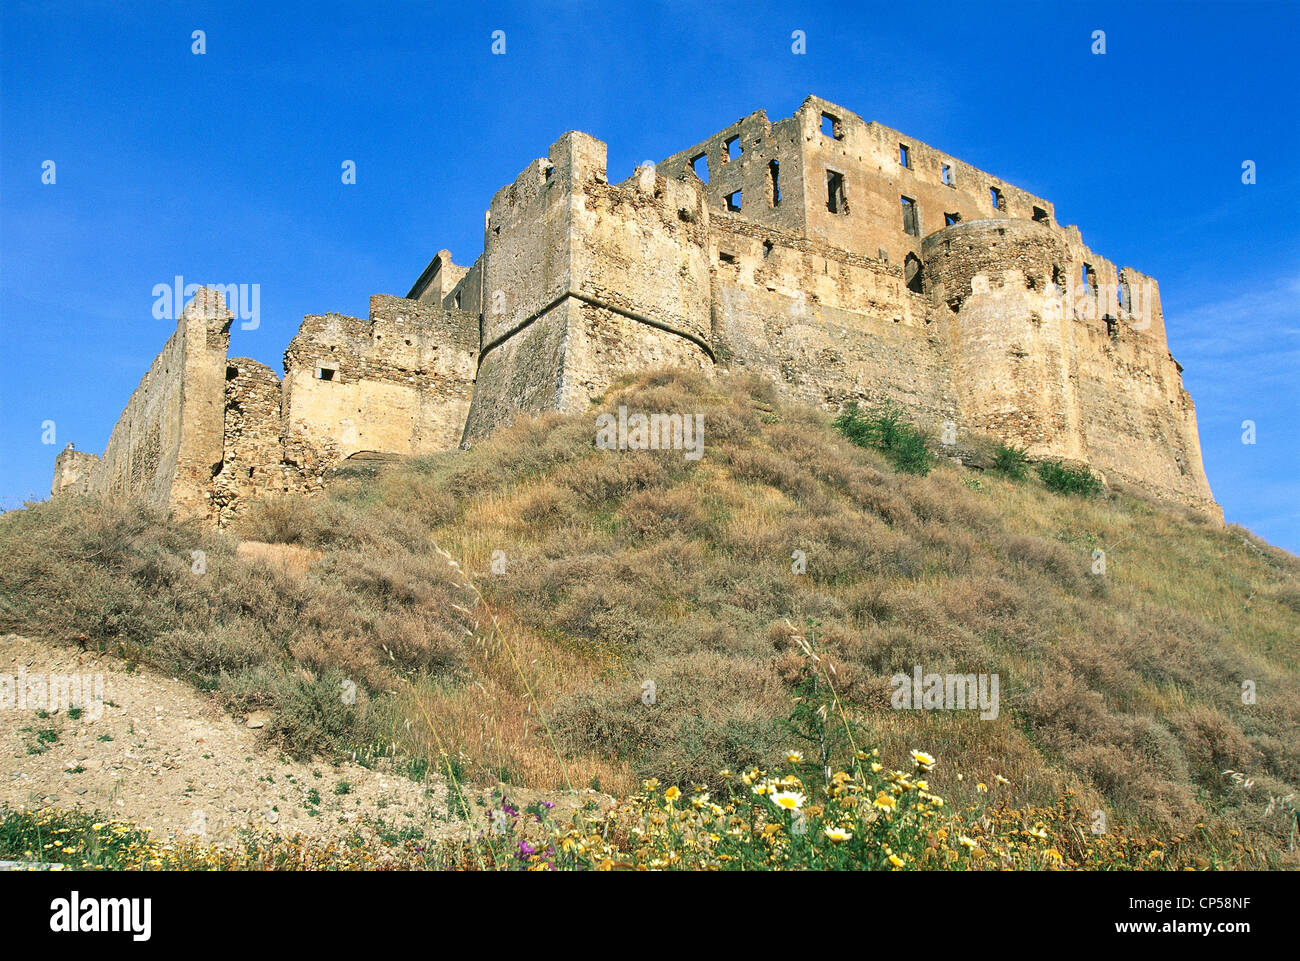 Calabria. Rocca Imperiale (CS), the castle of Frederick II. - Stock Image